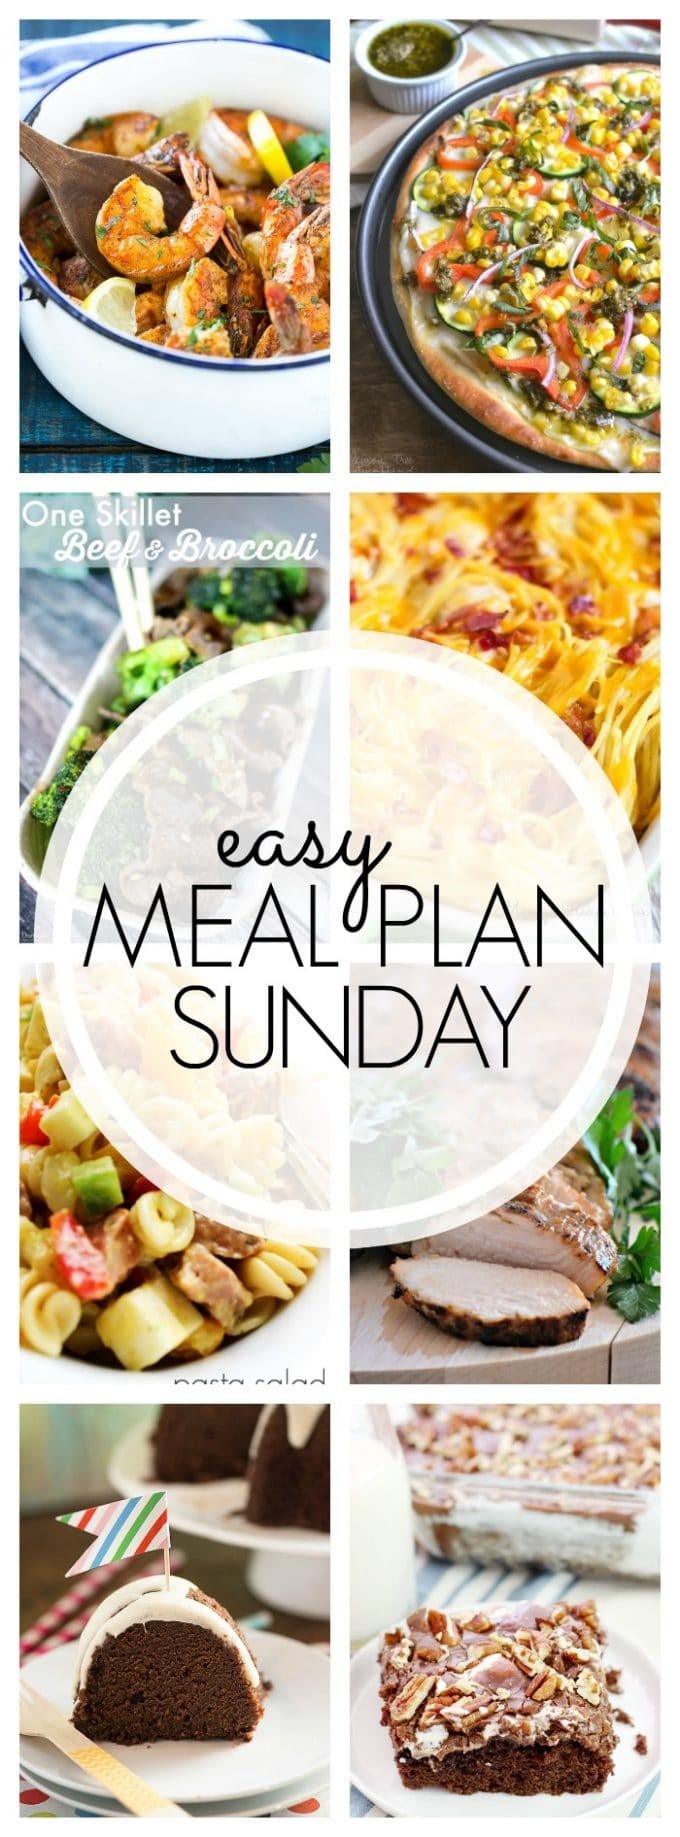 Easy Meal Plan Sunday - Week 58